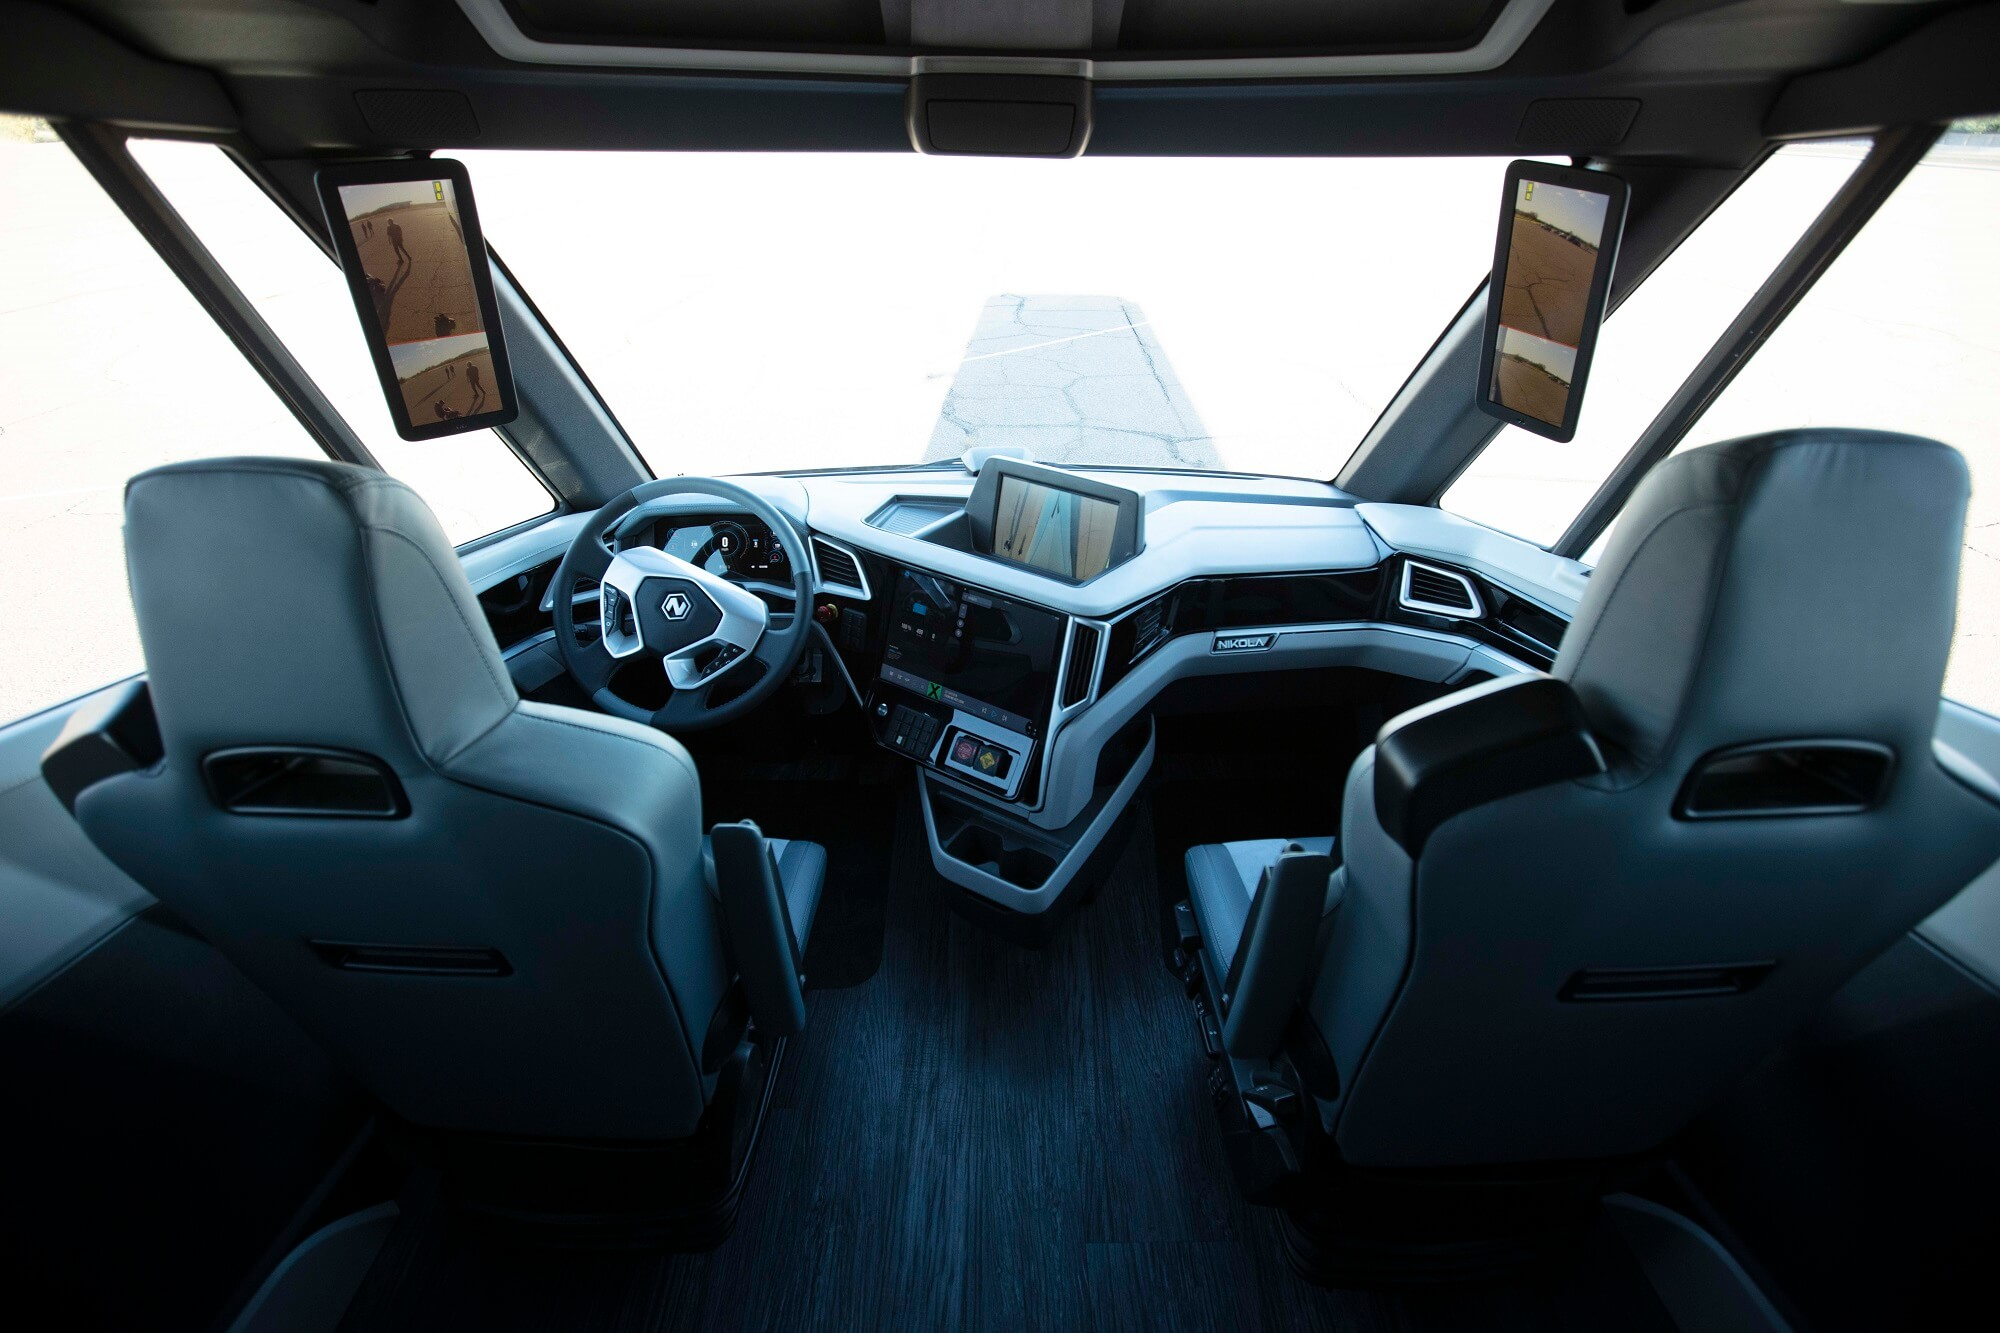 Interior of the Nikola Two autonomous truck